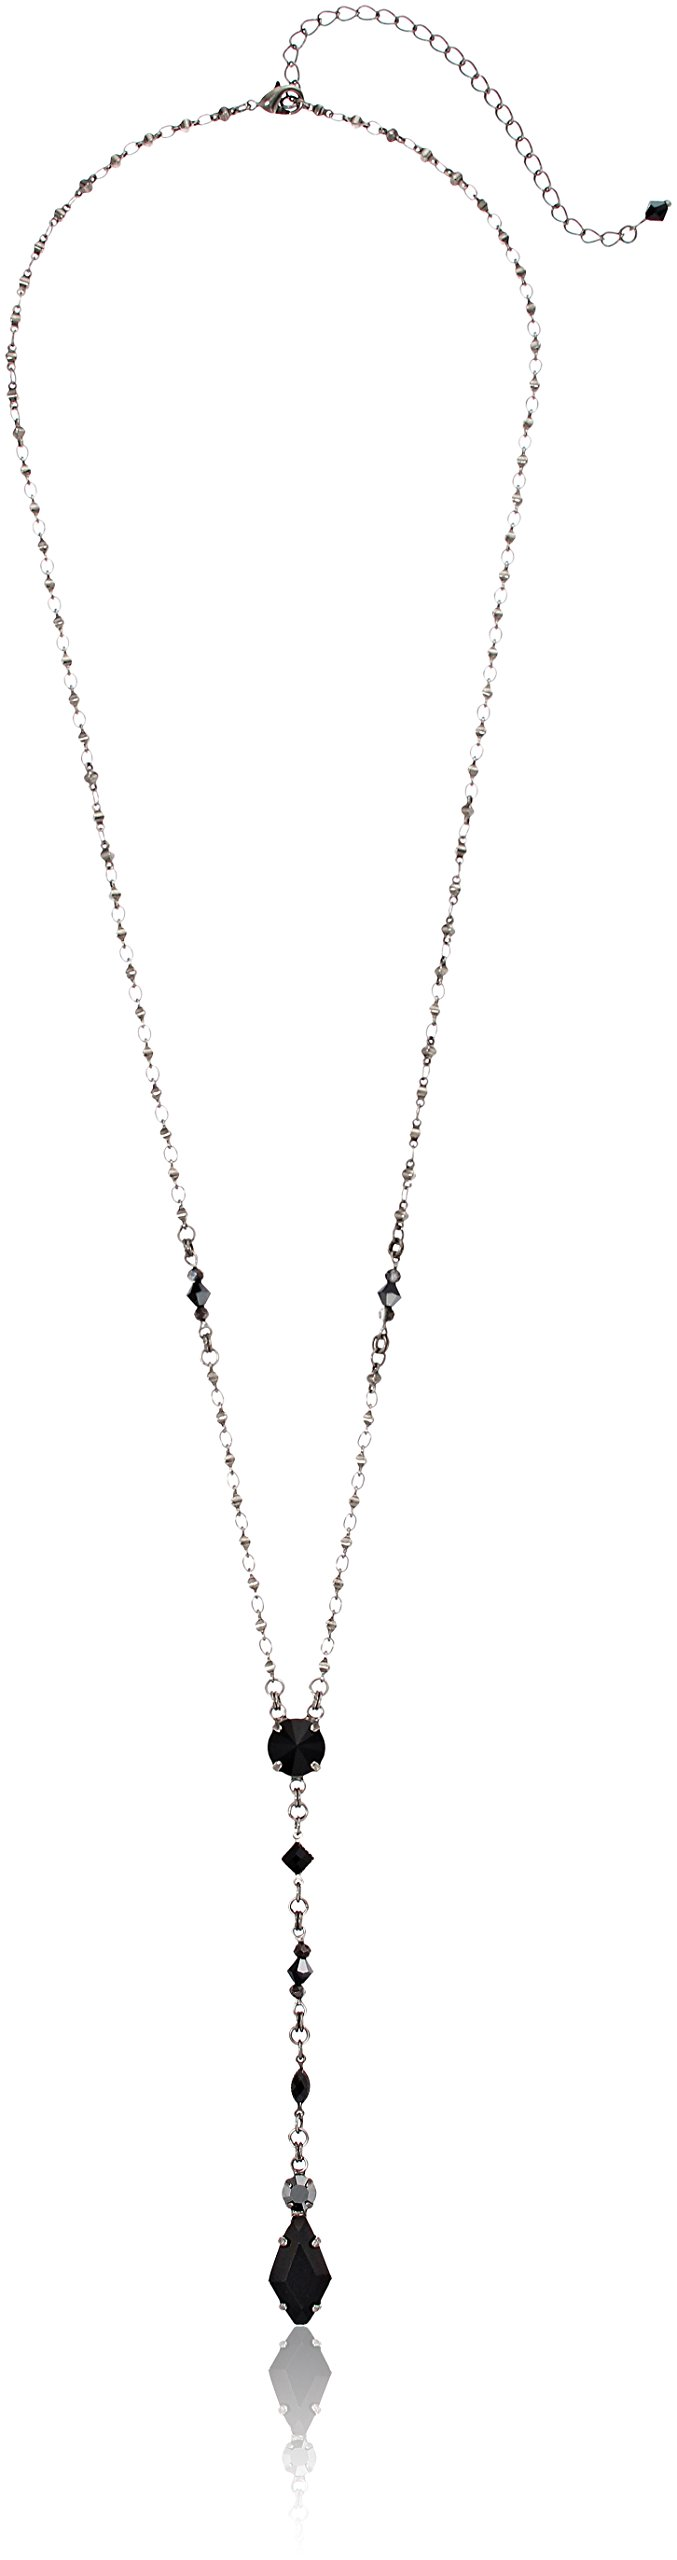 Sorrelli Delicate Y-shaped Necklace, 28'' + 5'' Extender by Sorelli